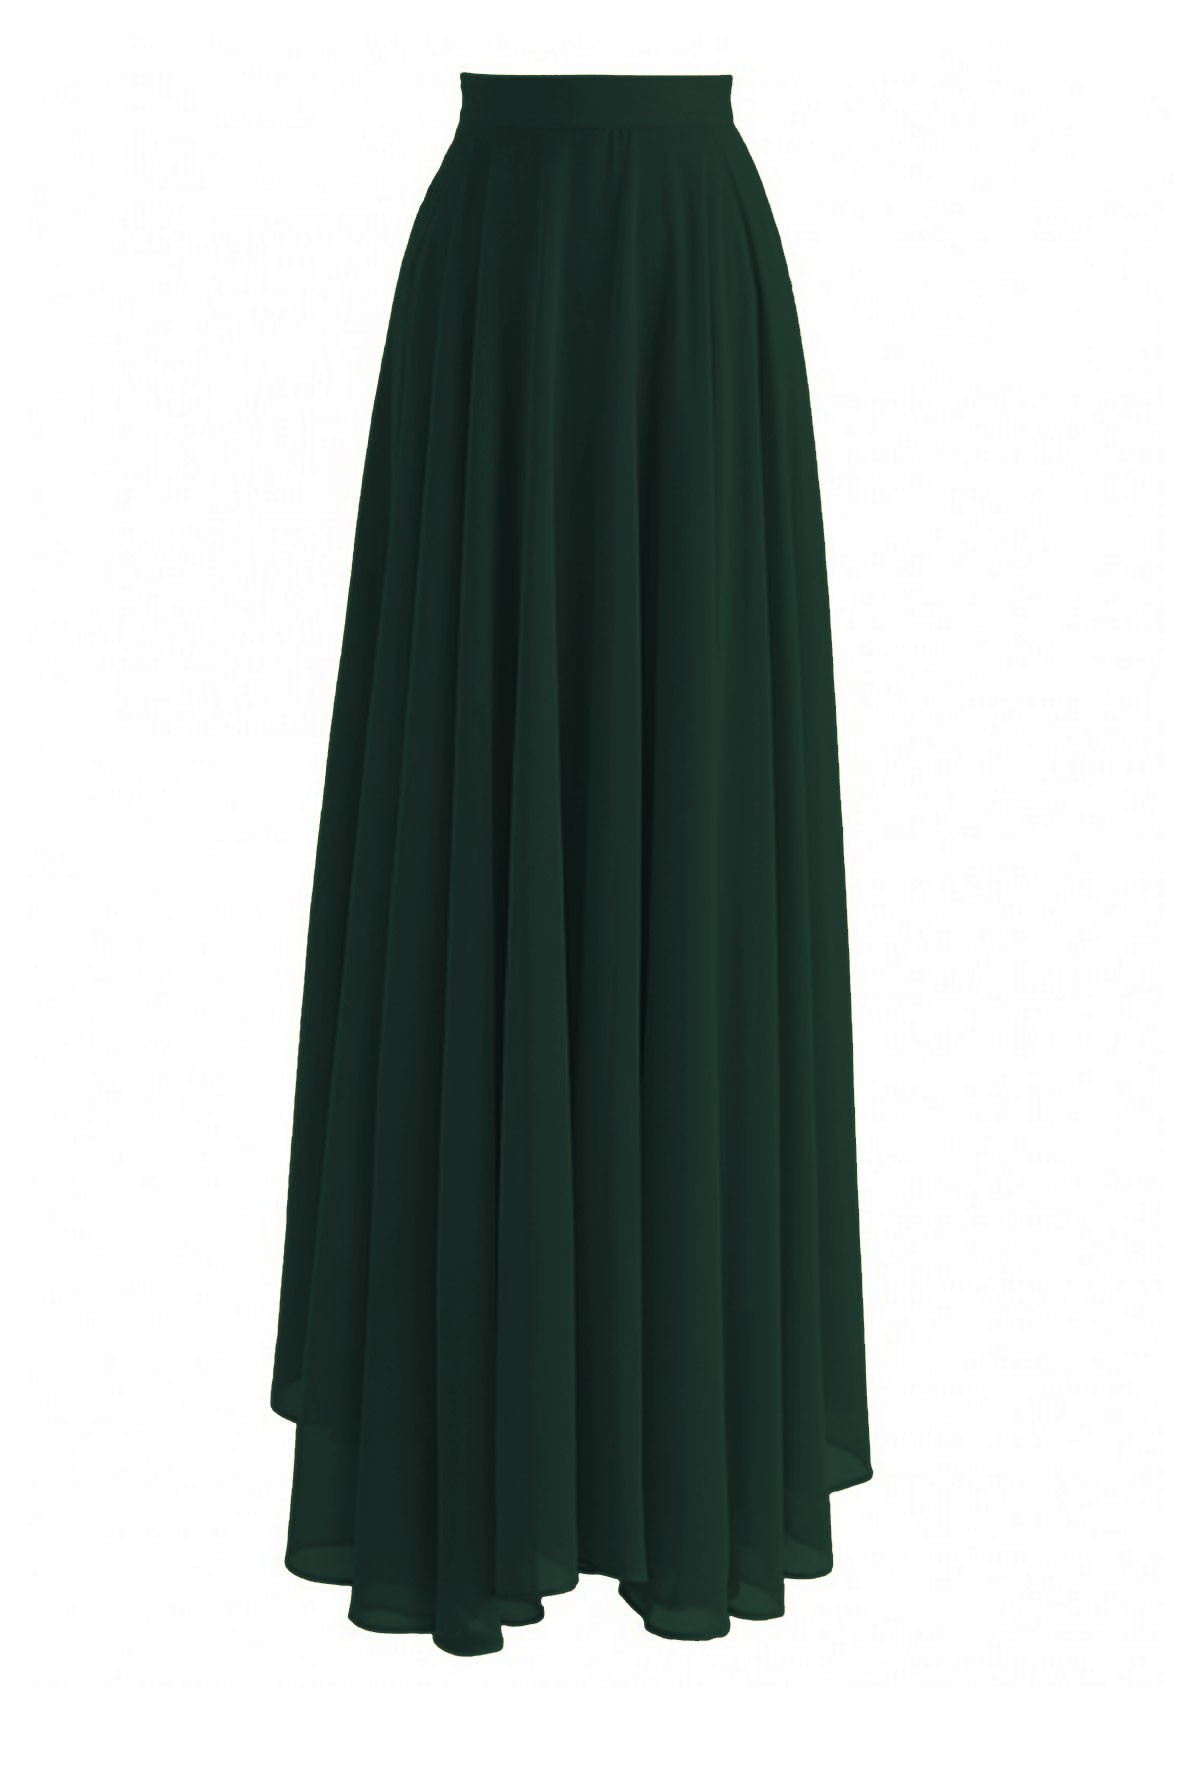 Timeless Favorite Skirt Dark green